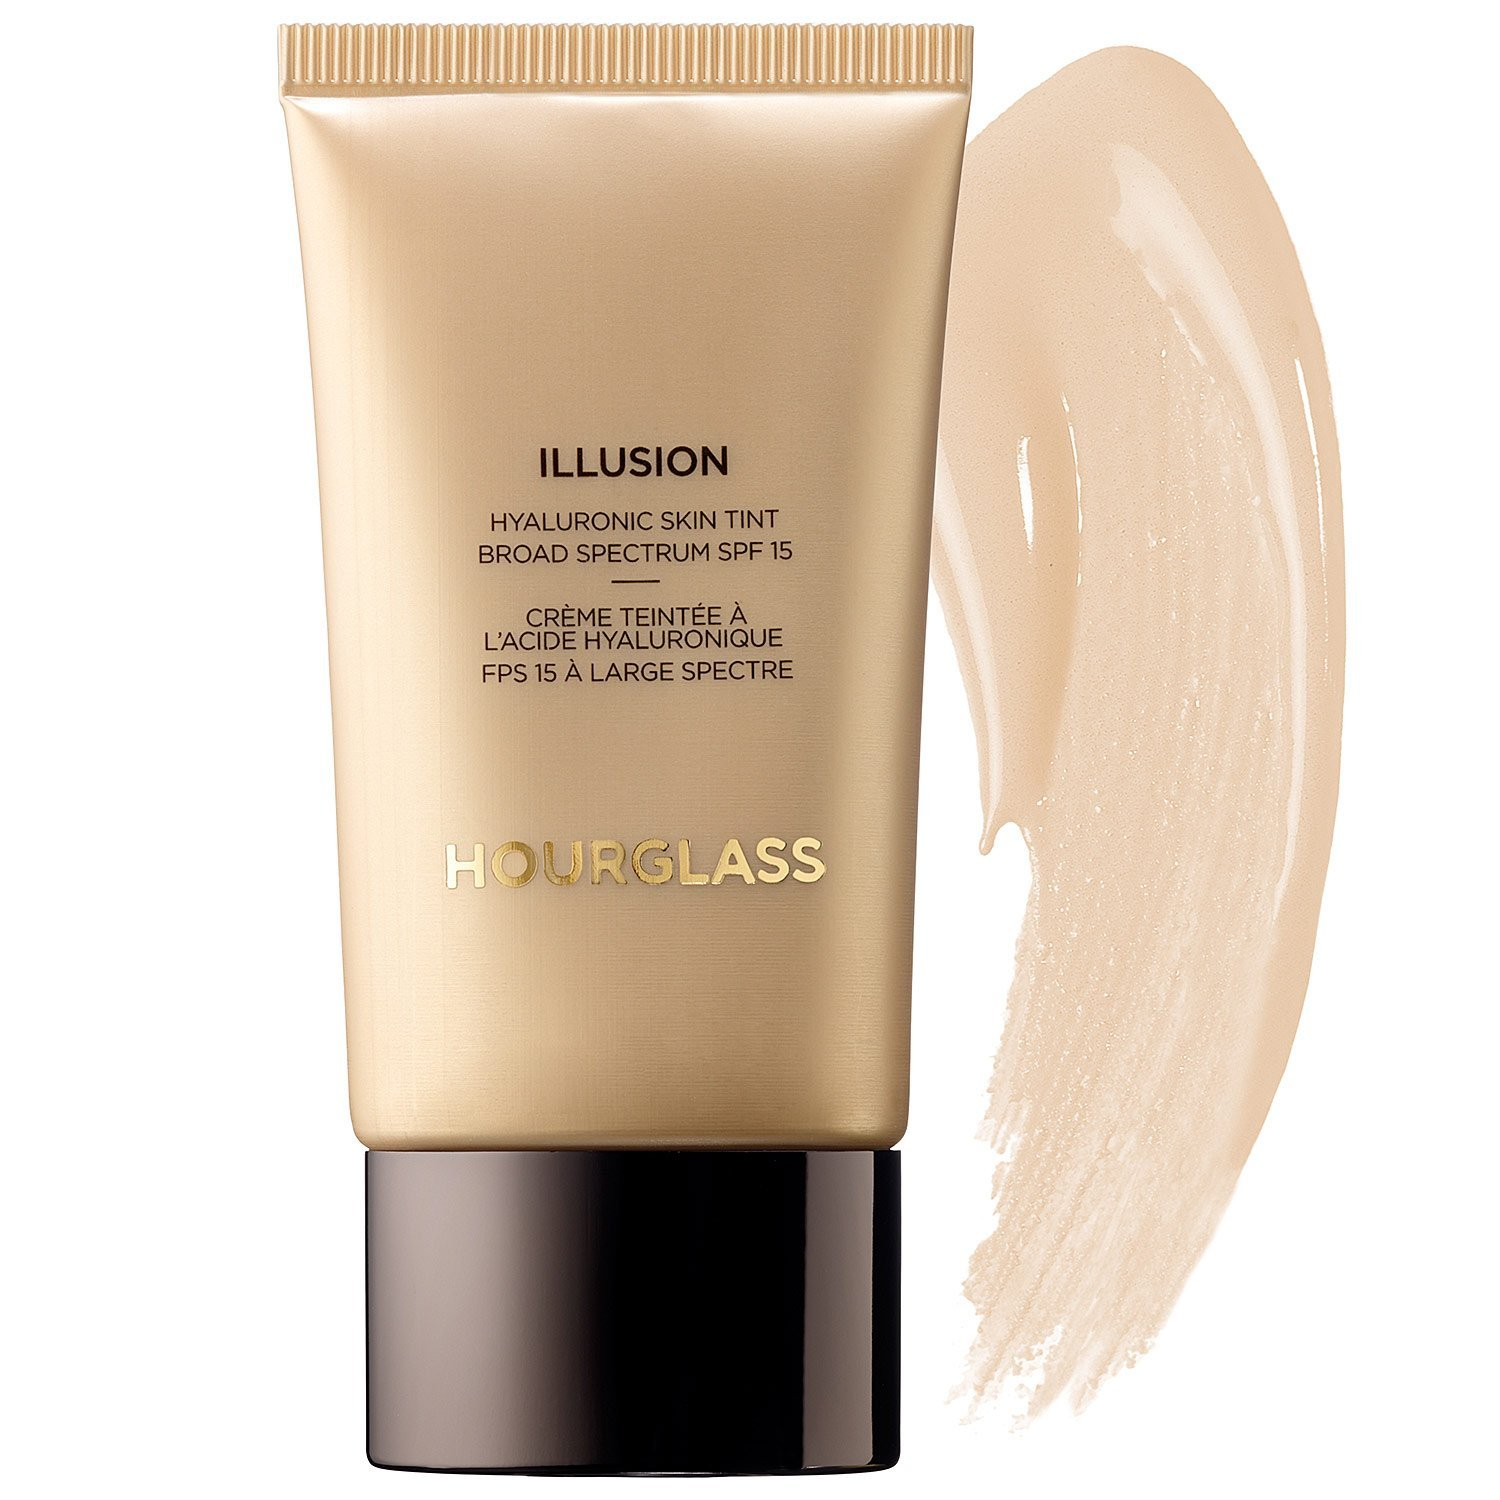 I love a good tinted moisturizer and I love that this one also contains hyaluronic acid.